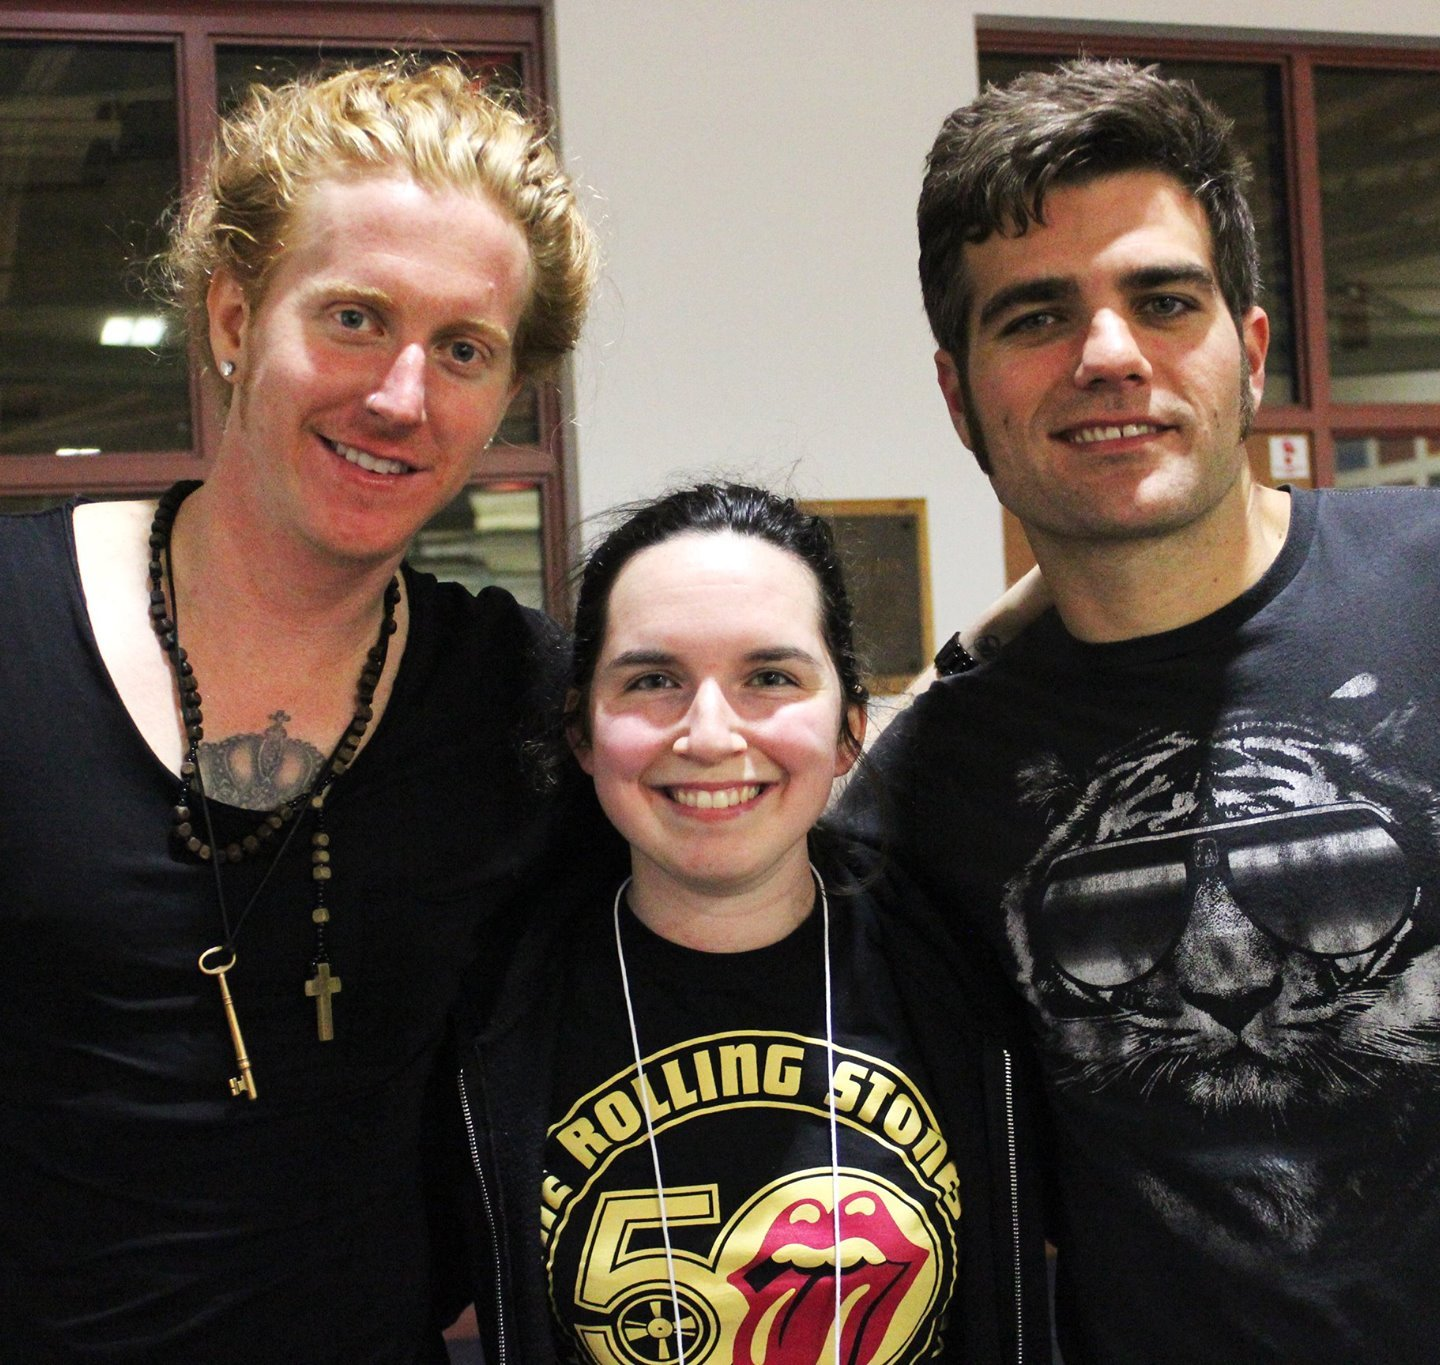 The Time I Met We the Kings